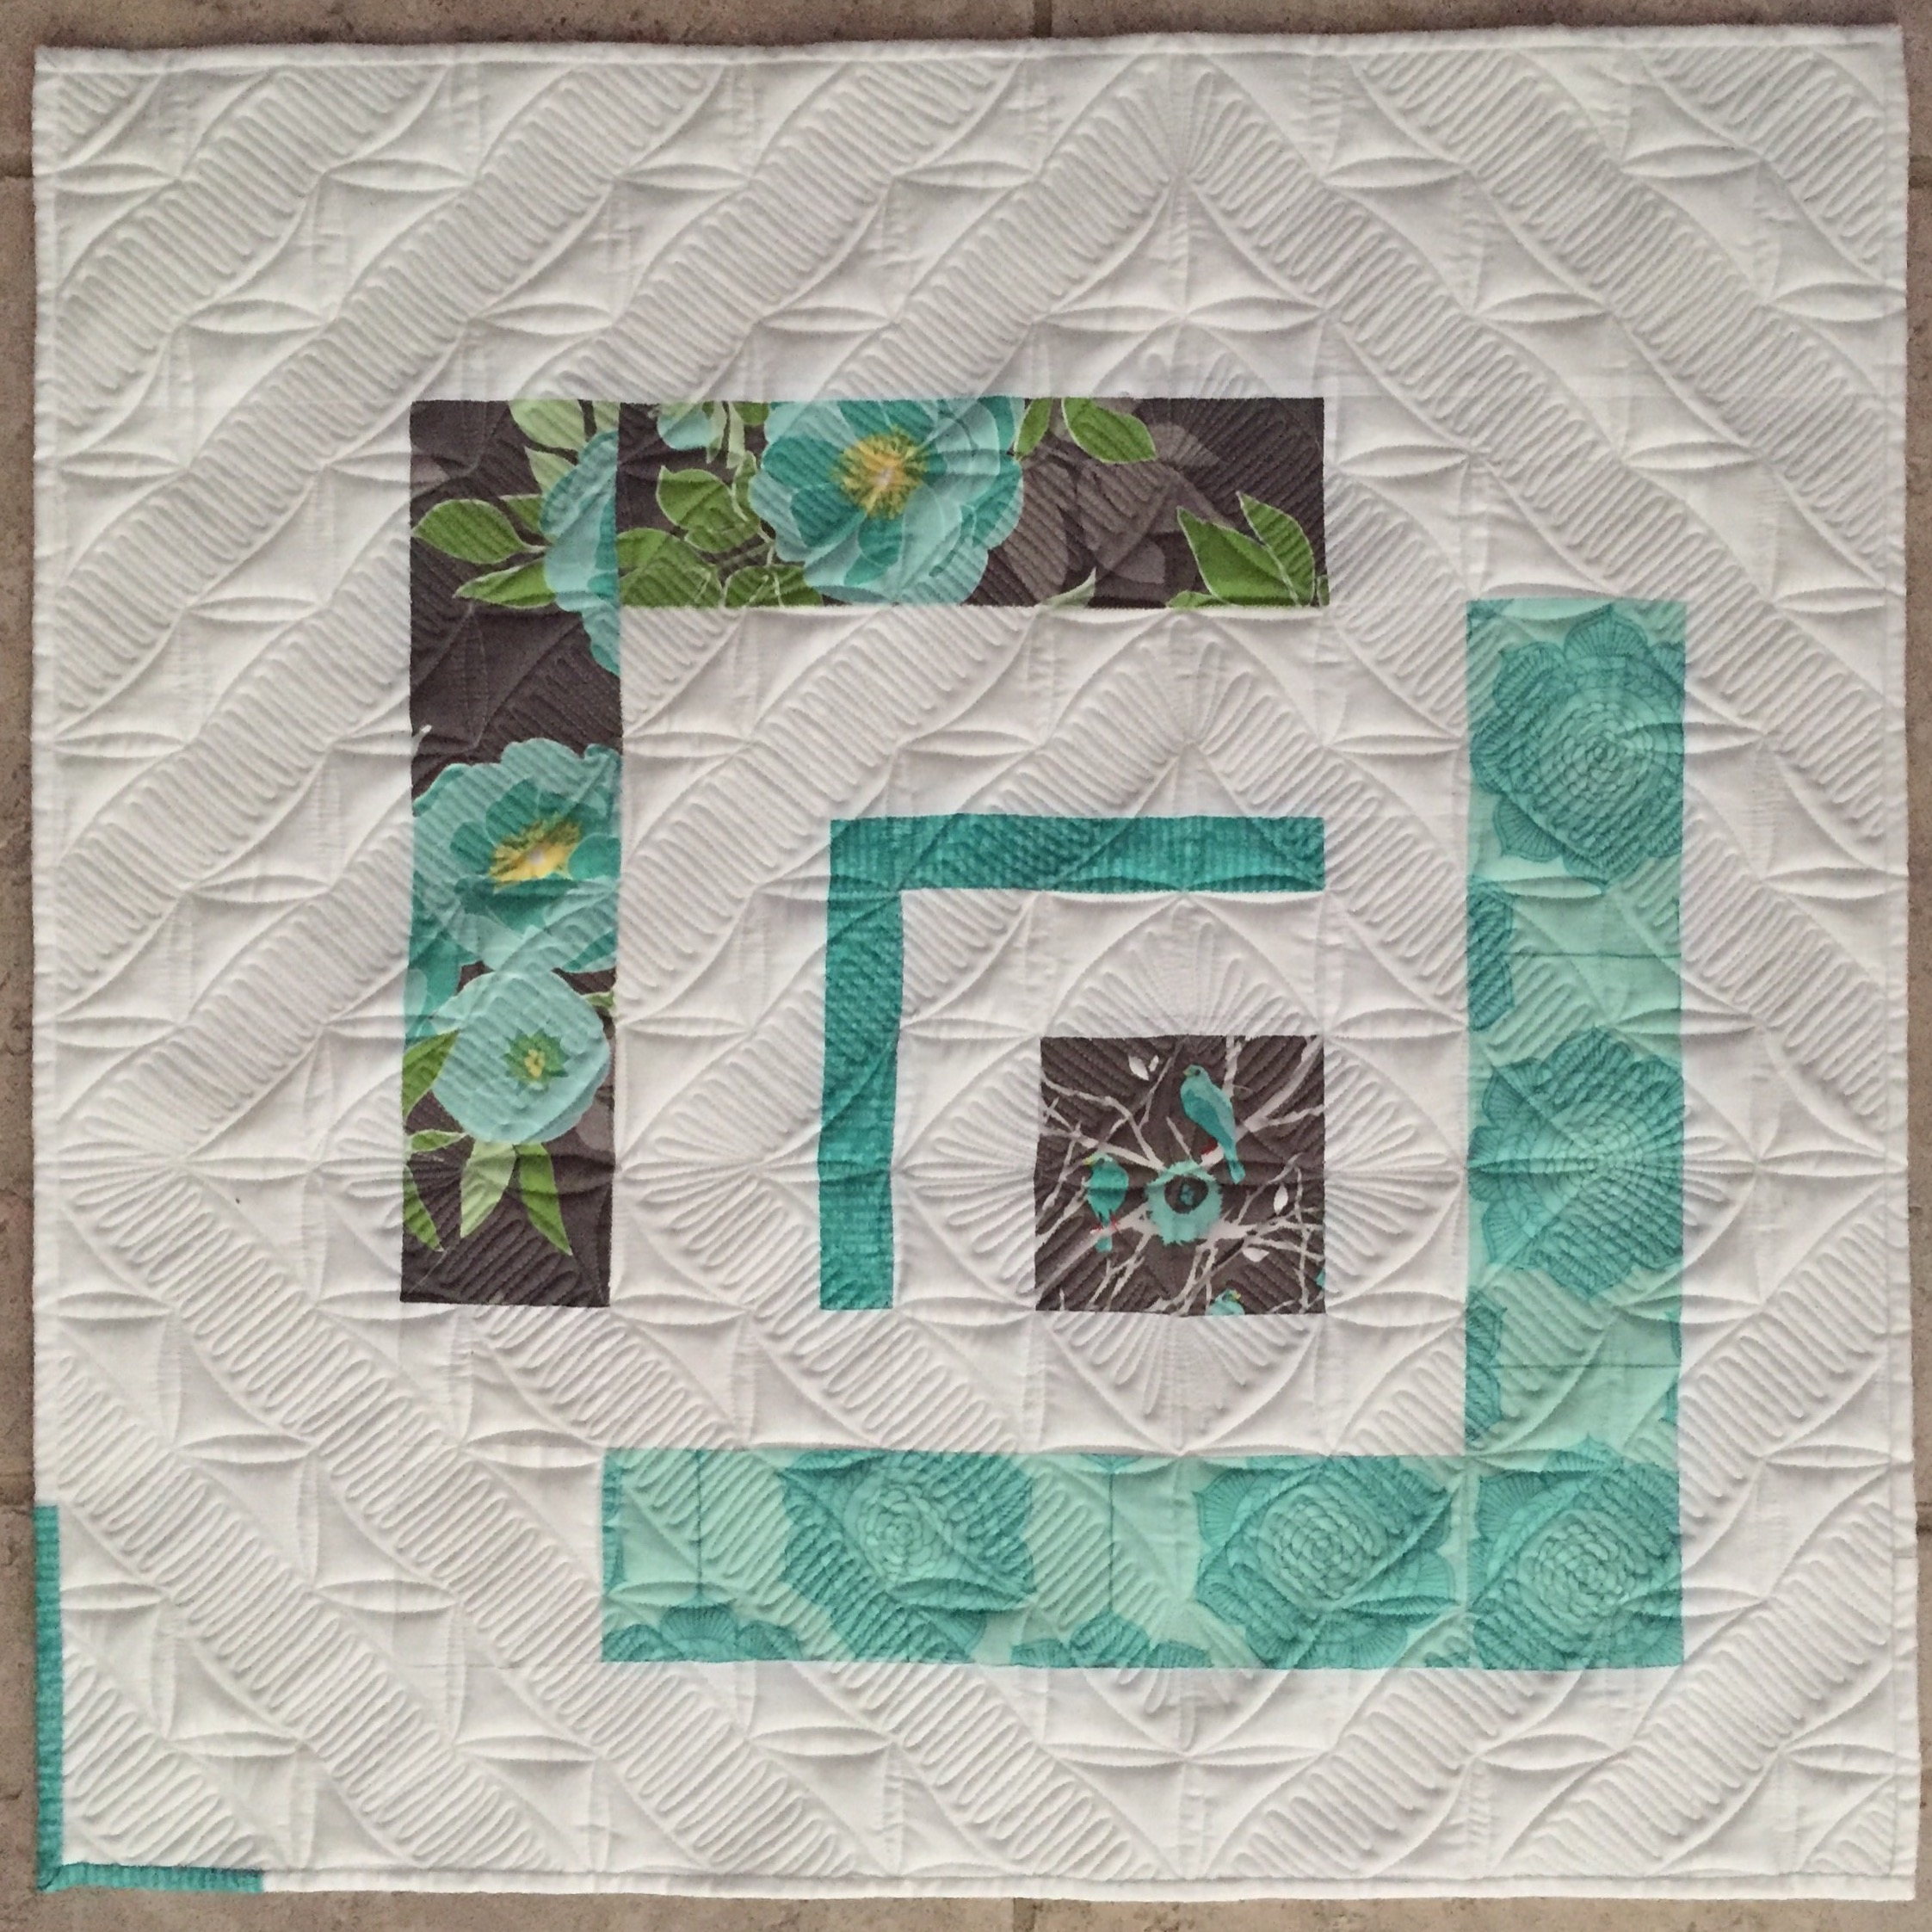 New Quilt Patterns For 2015 : 2015 New Quilt Bloggers Blog Hop - Orchid Owl Quilts